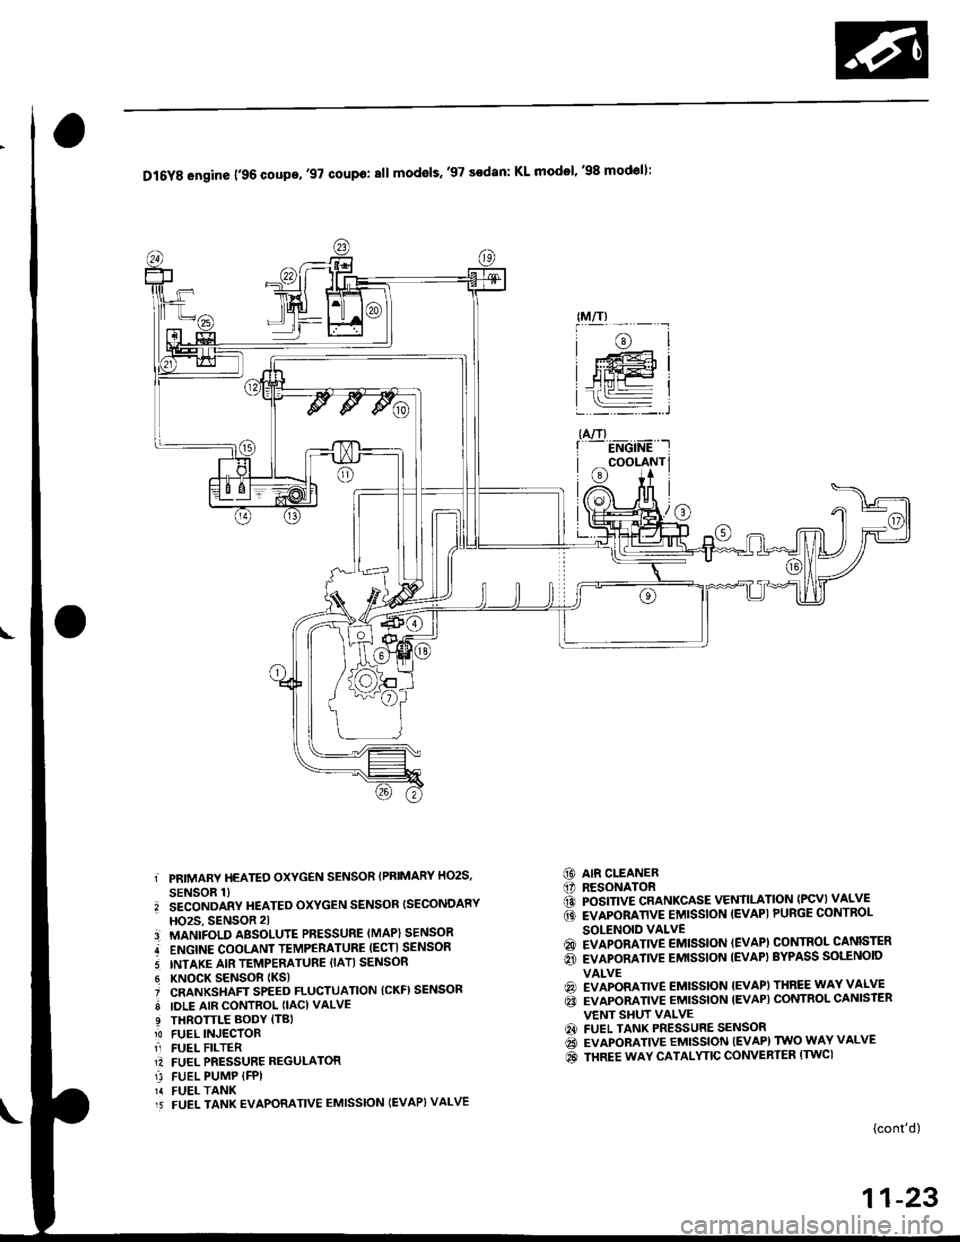 Service manual [1998 Honda Civic Engine Workshop Manual